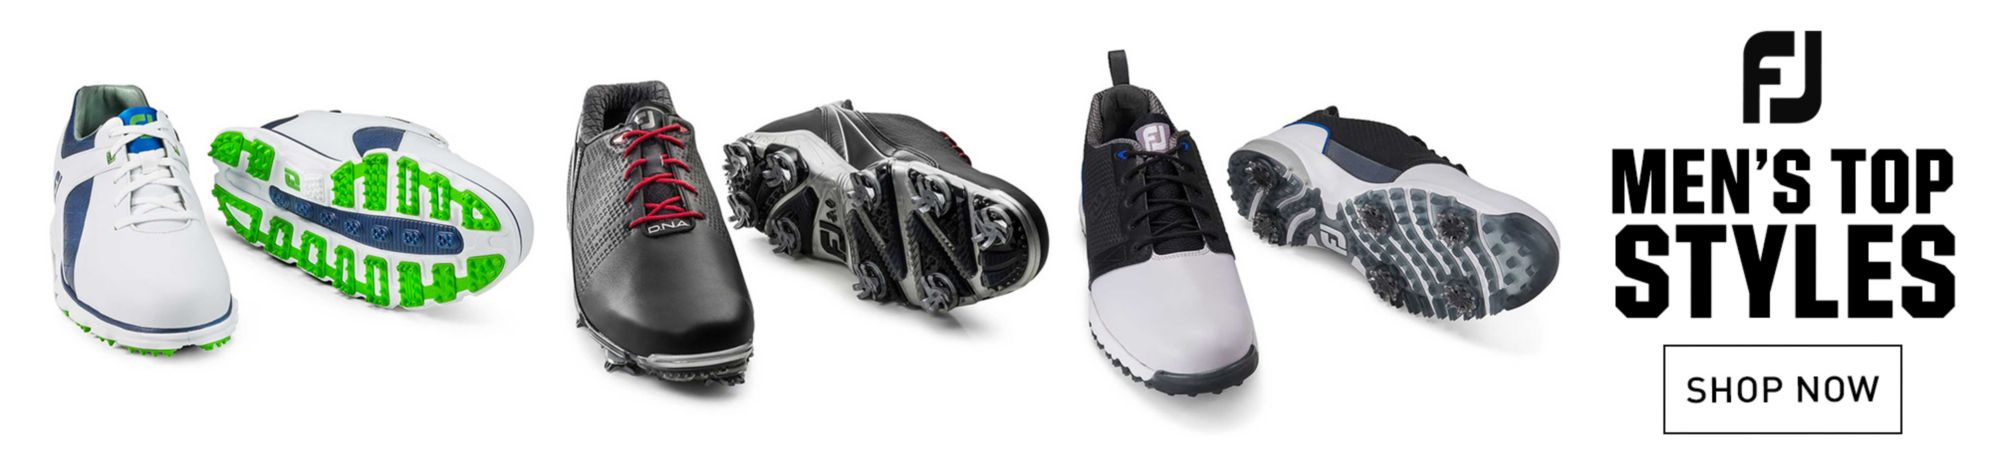 Shop Golf Shoes Top Styles